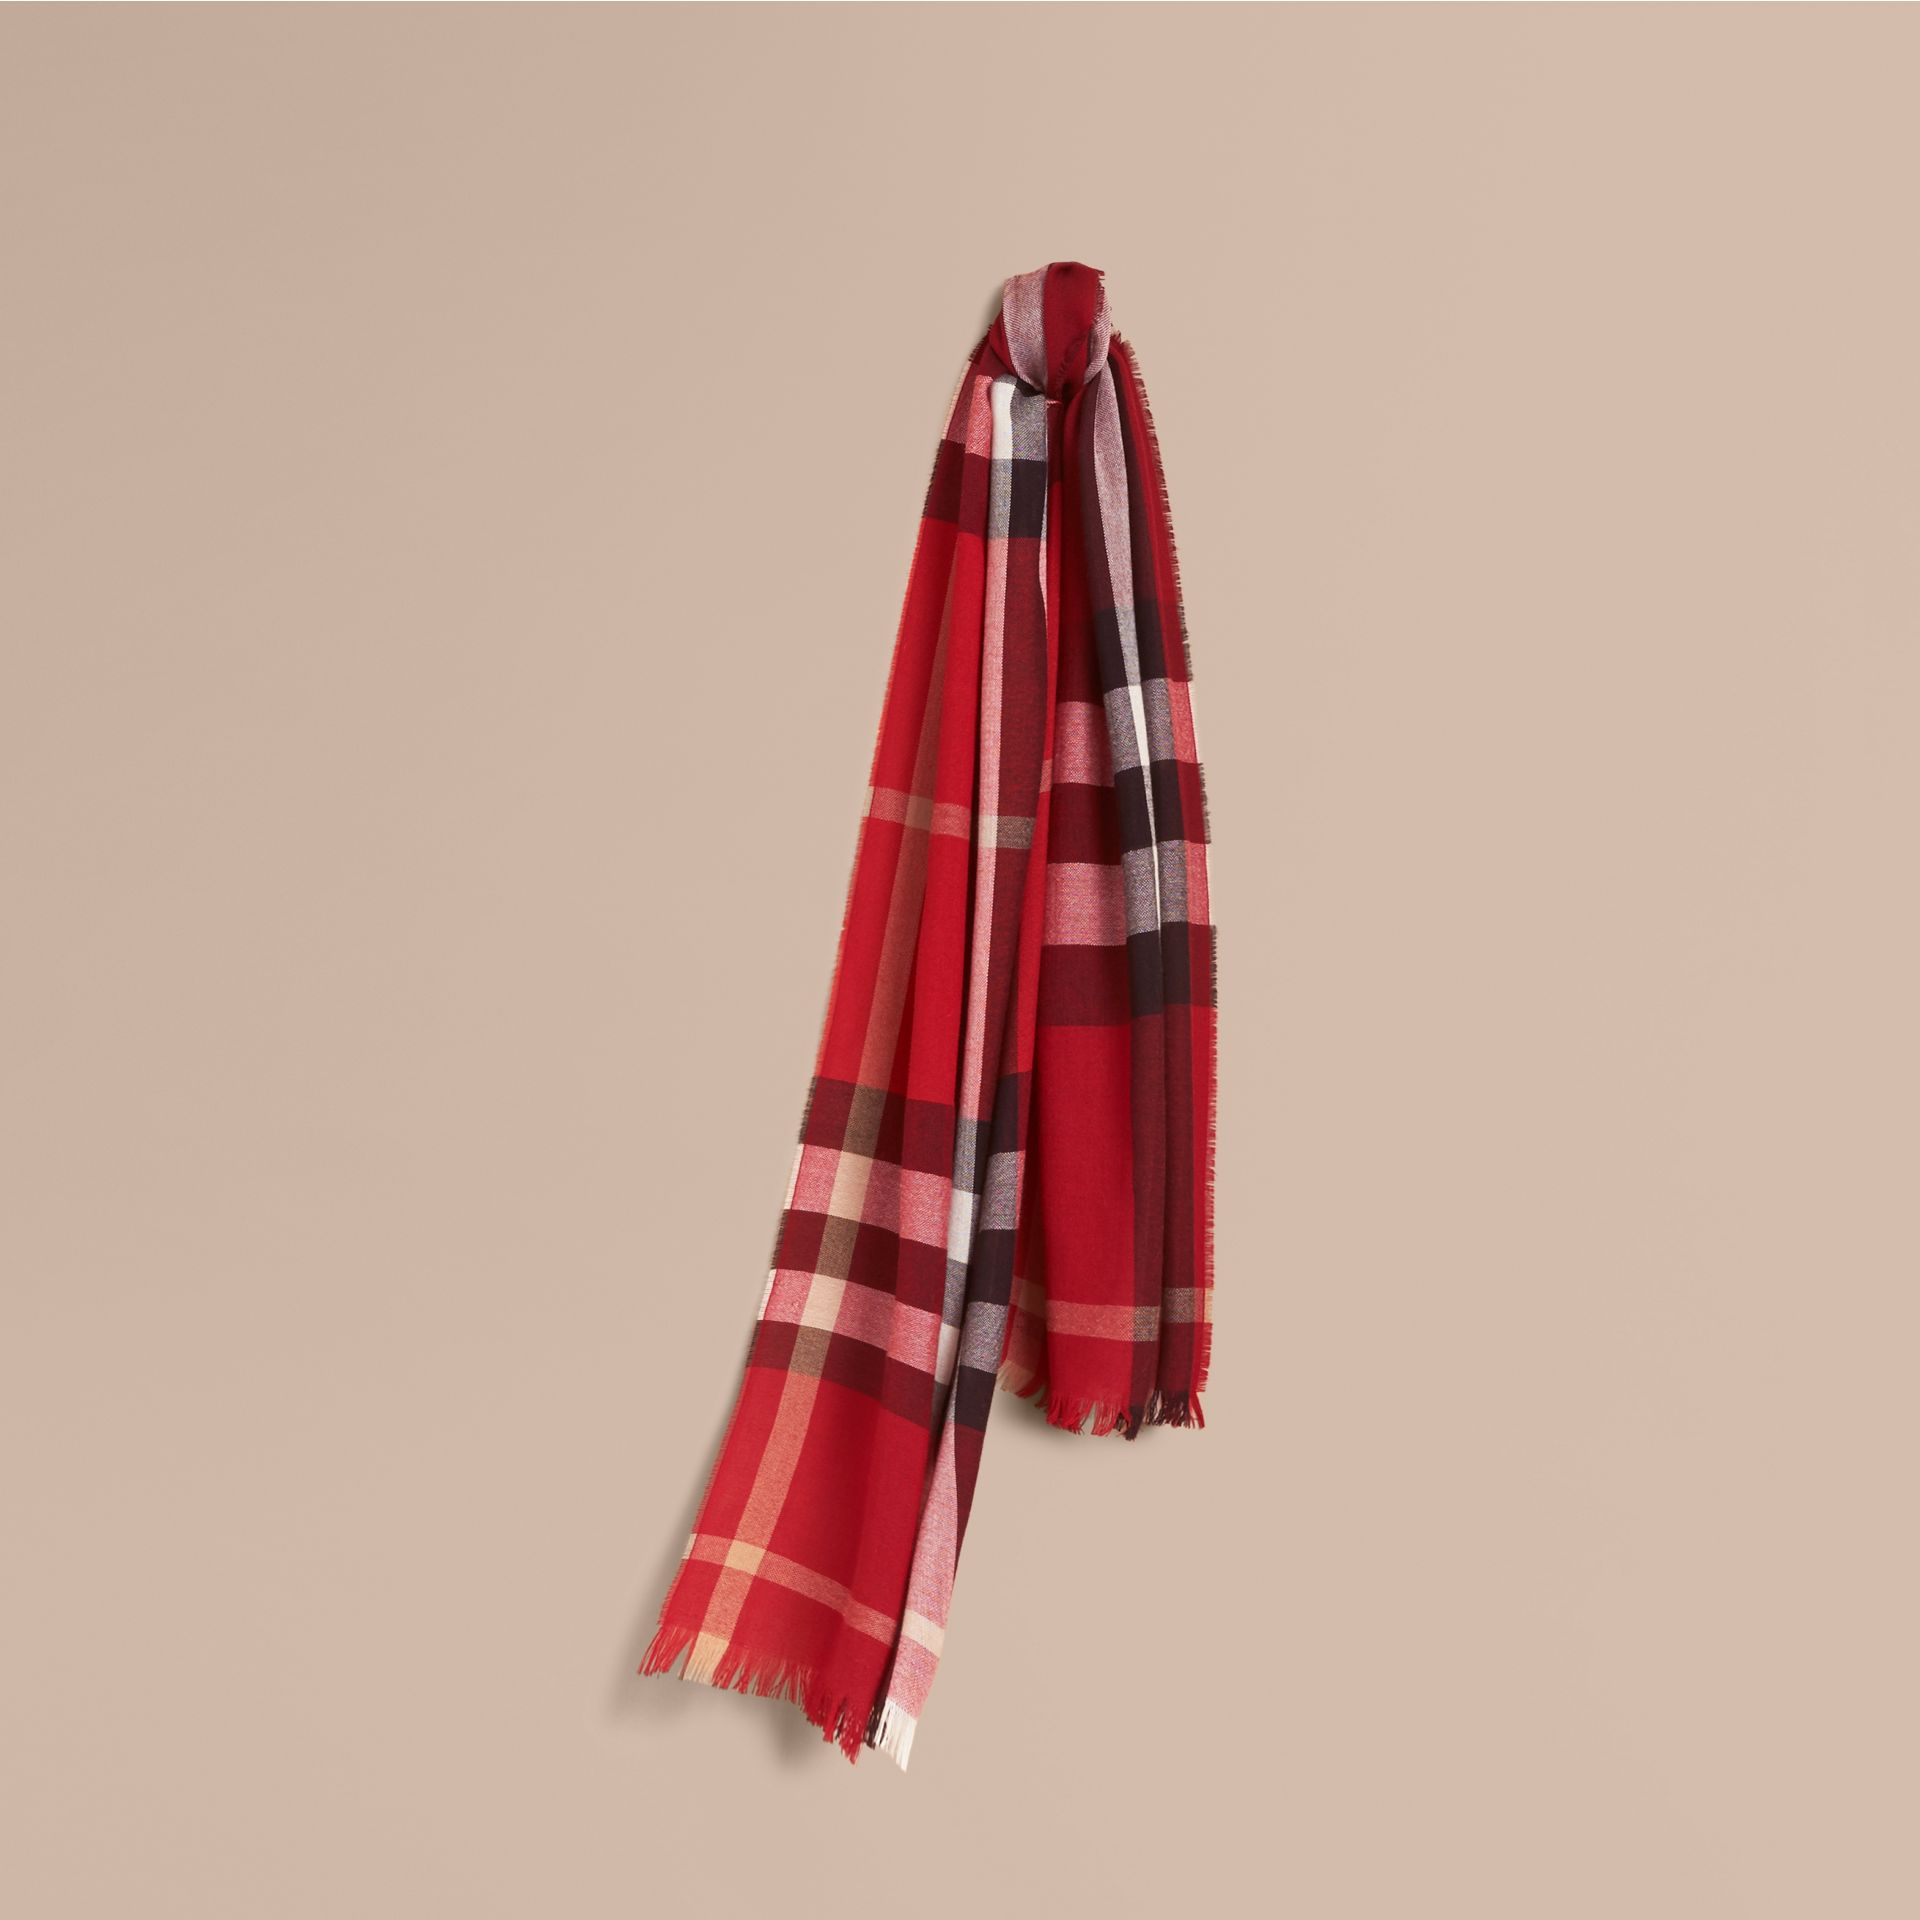 Lightweight Check Wool Cashmere Scarf in Parade Red | Burberry - gallery image 1